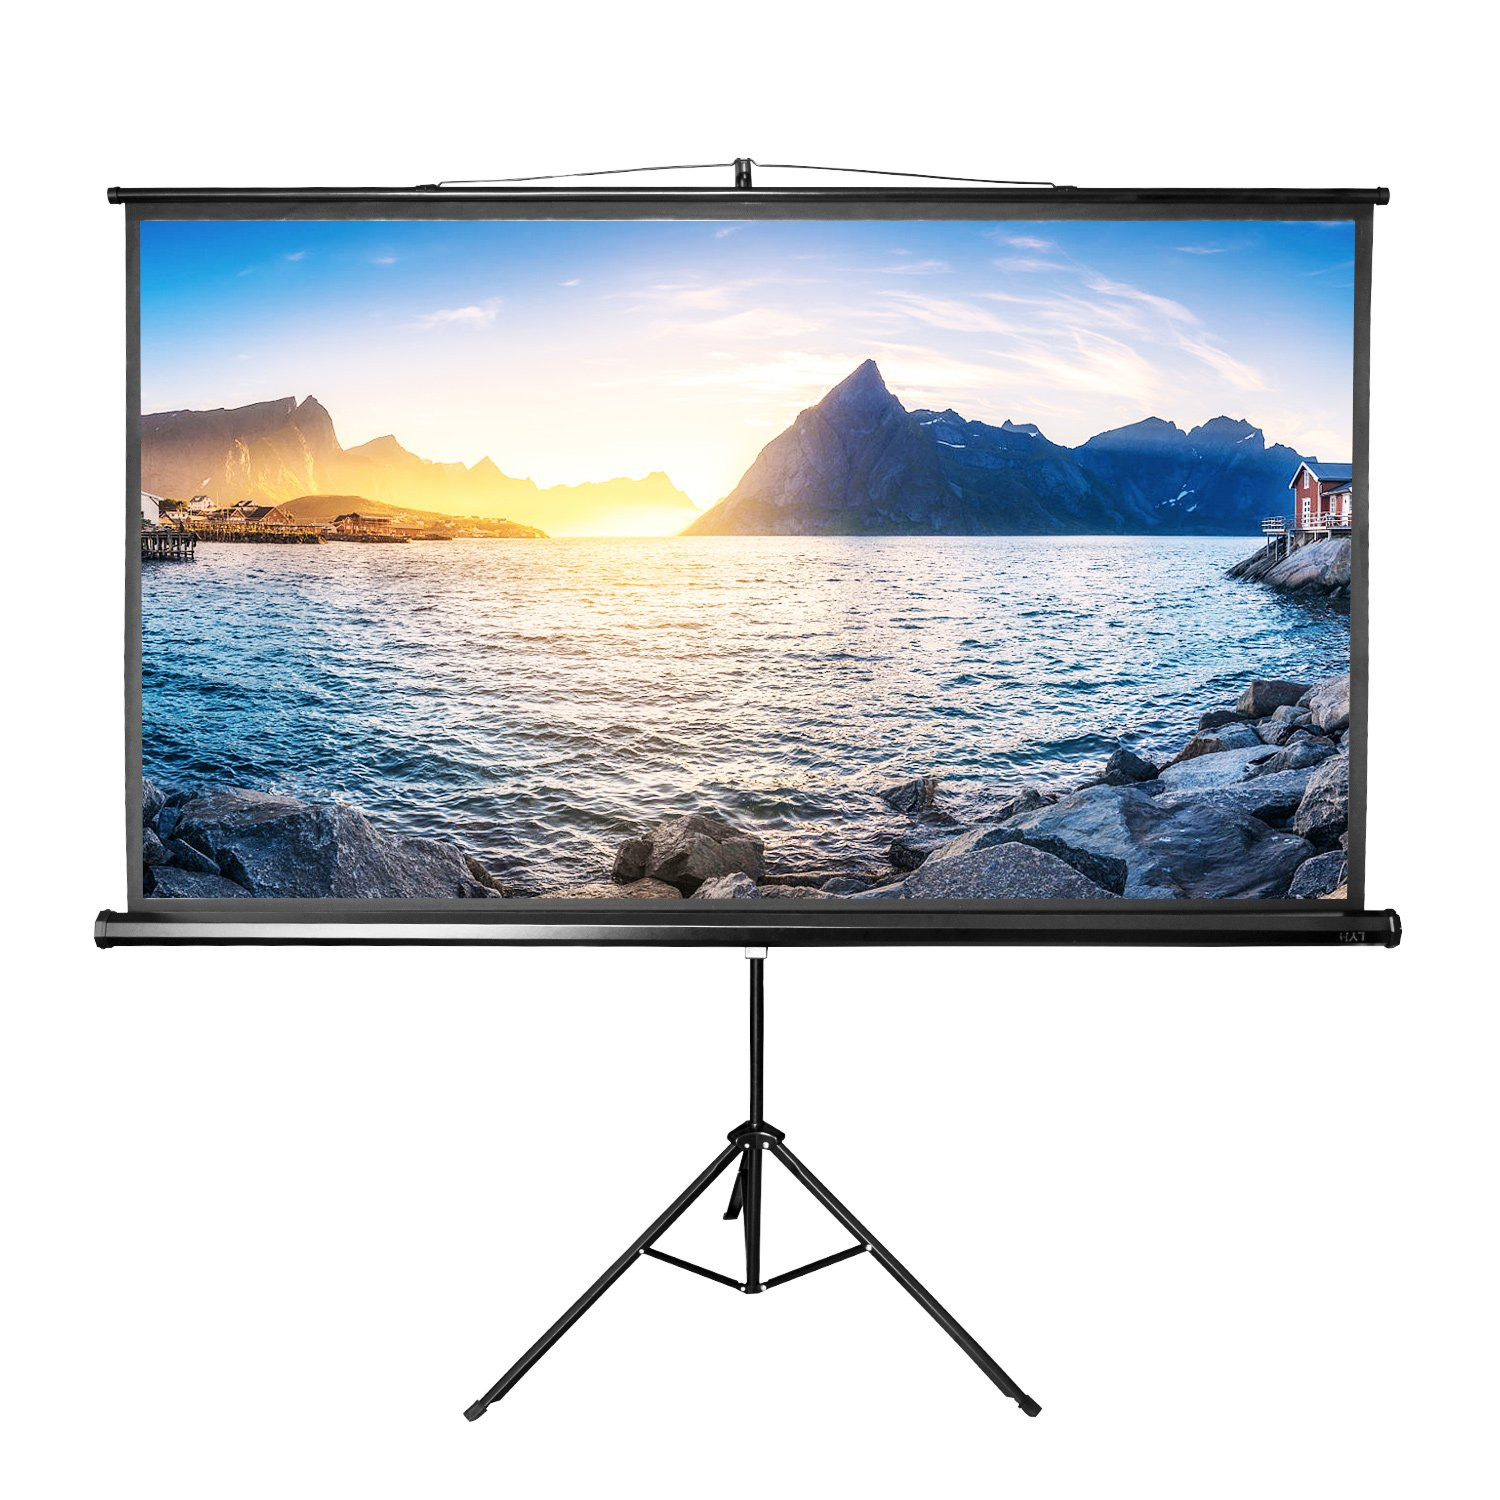 Projector Screen with Stand, LYH Indoor Outdoor Movie Screen 100 Inch Diagonal HD 16:9 with Premium Wrinkle-Free Design (Easy to Installation,160° Degree Viewing Angle)